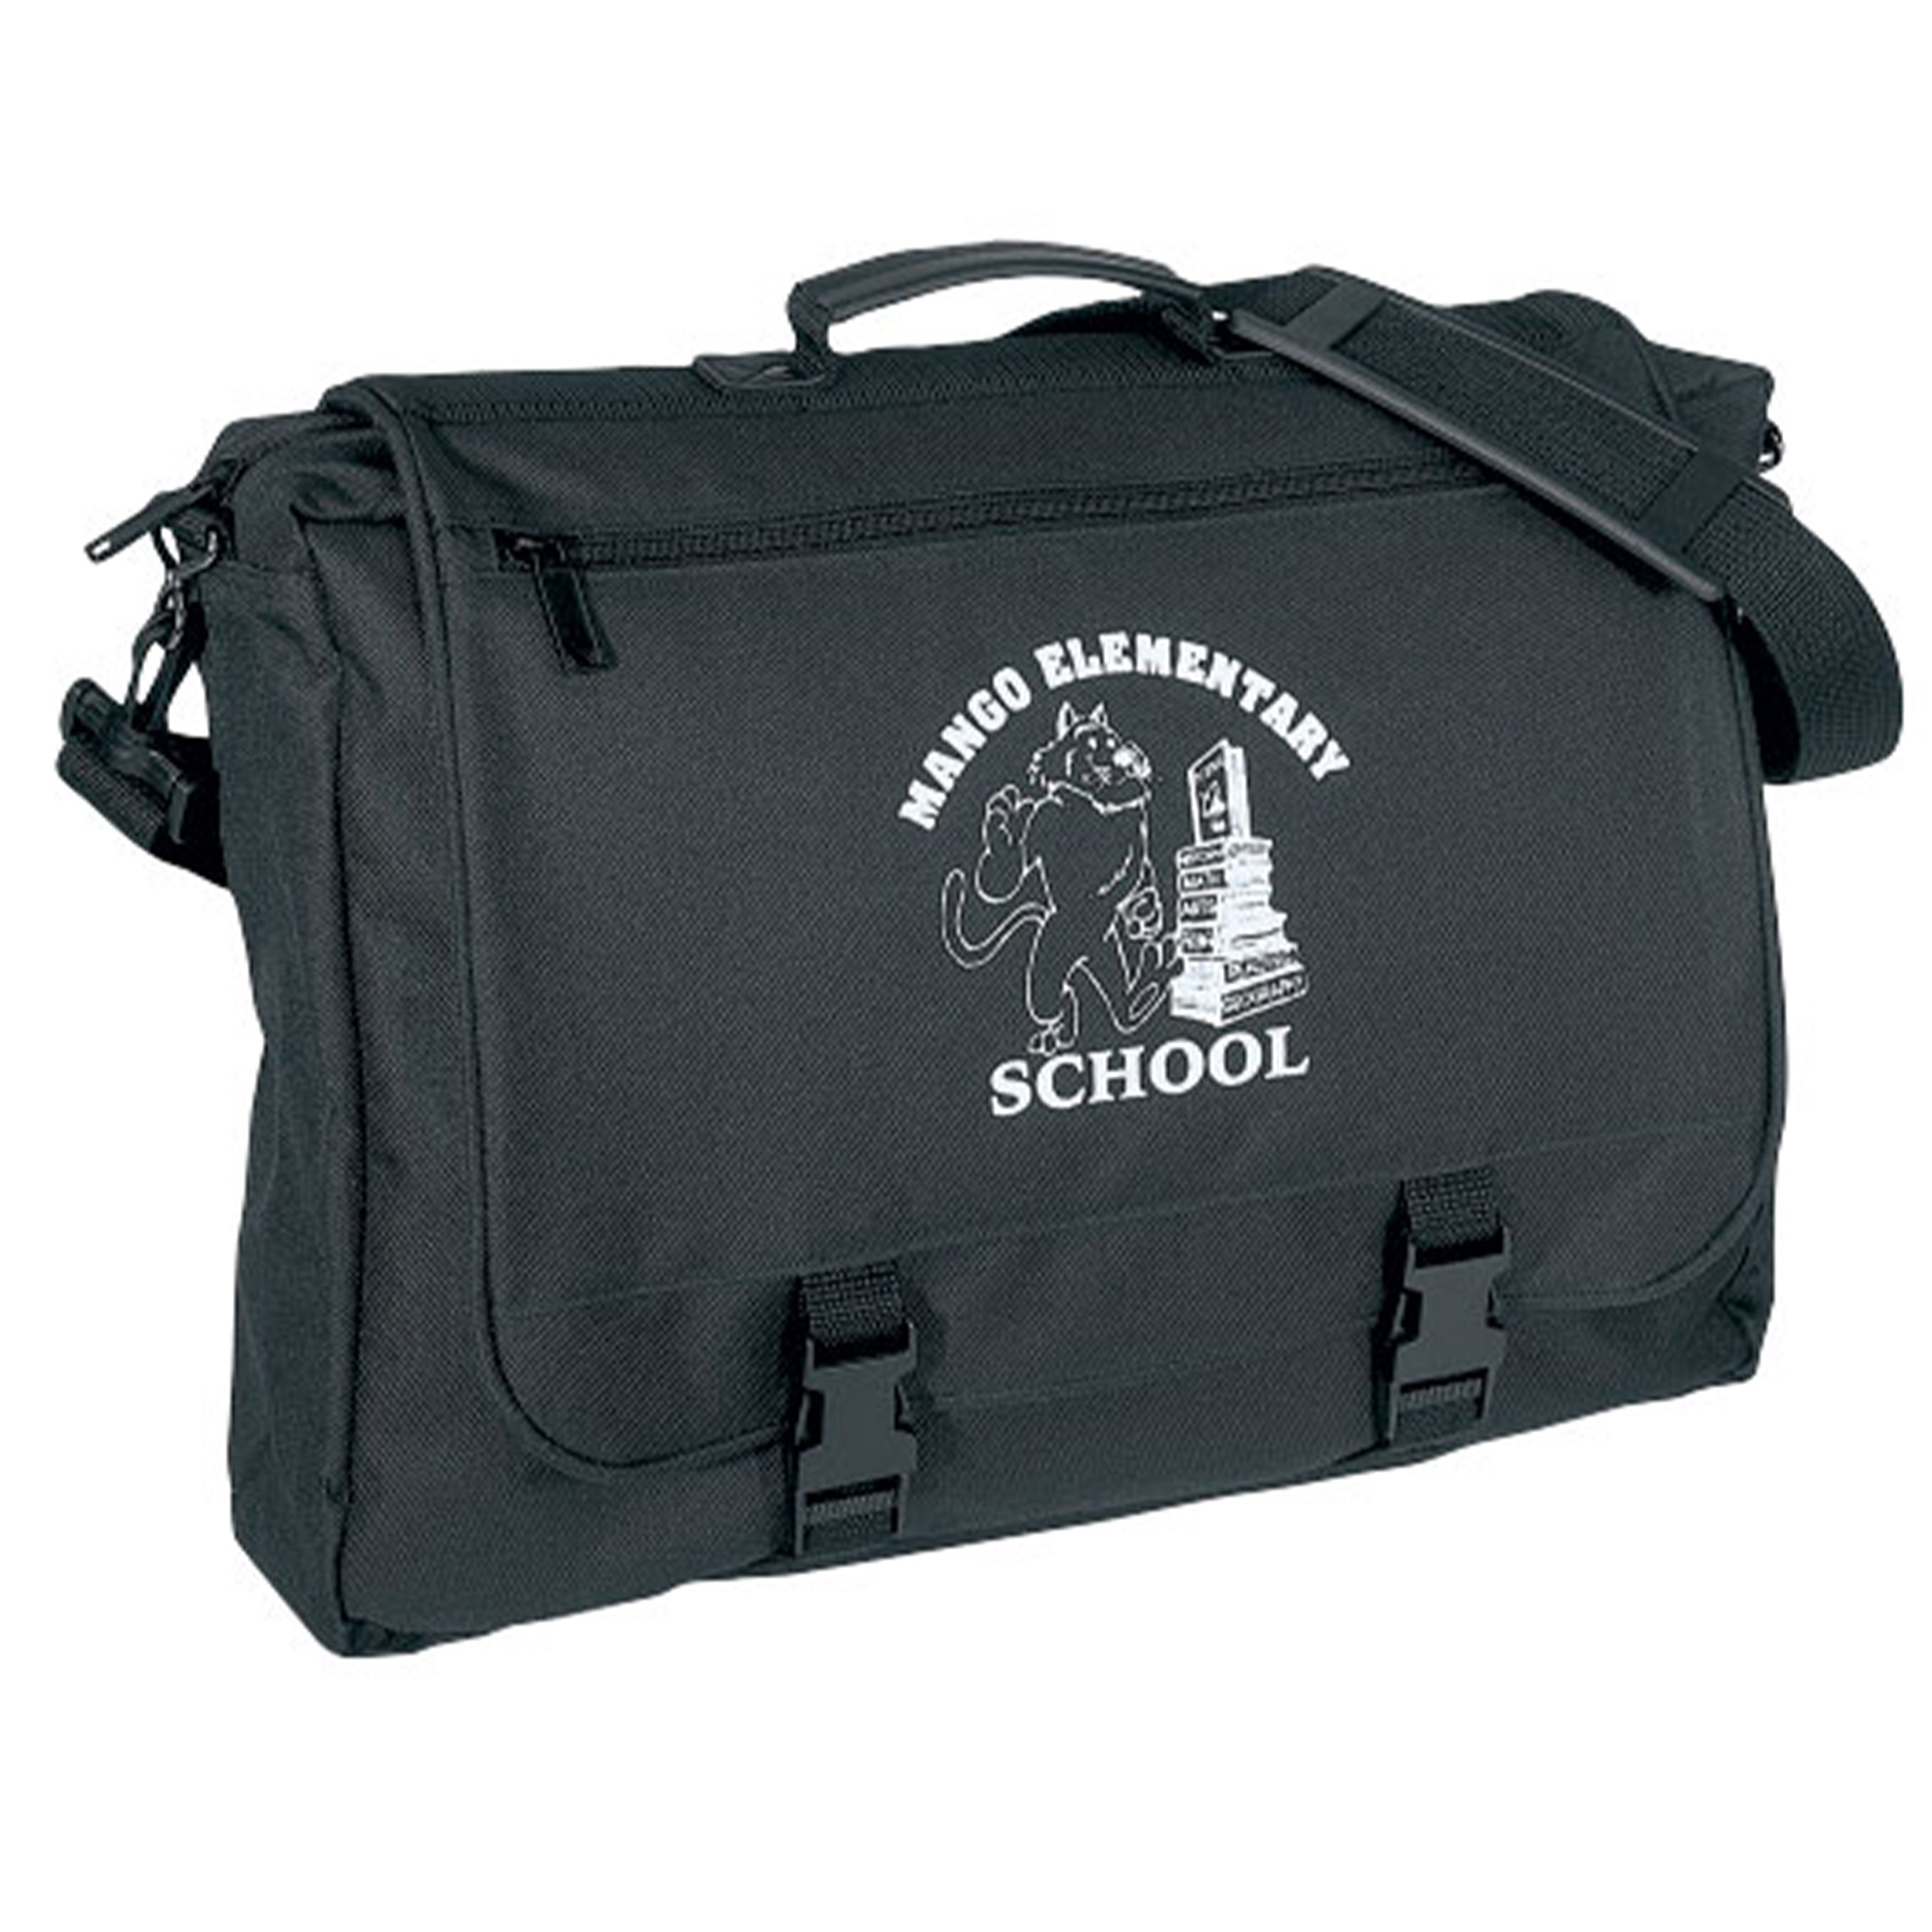 STANDARD BRIEFCASE - 1 Colour Print, From $9.74